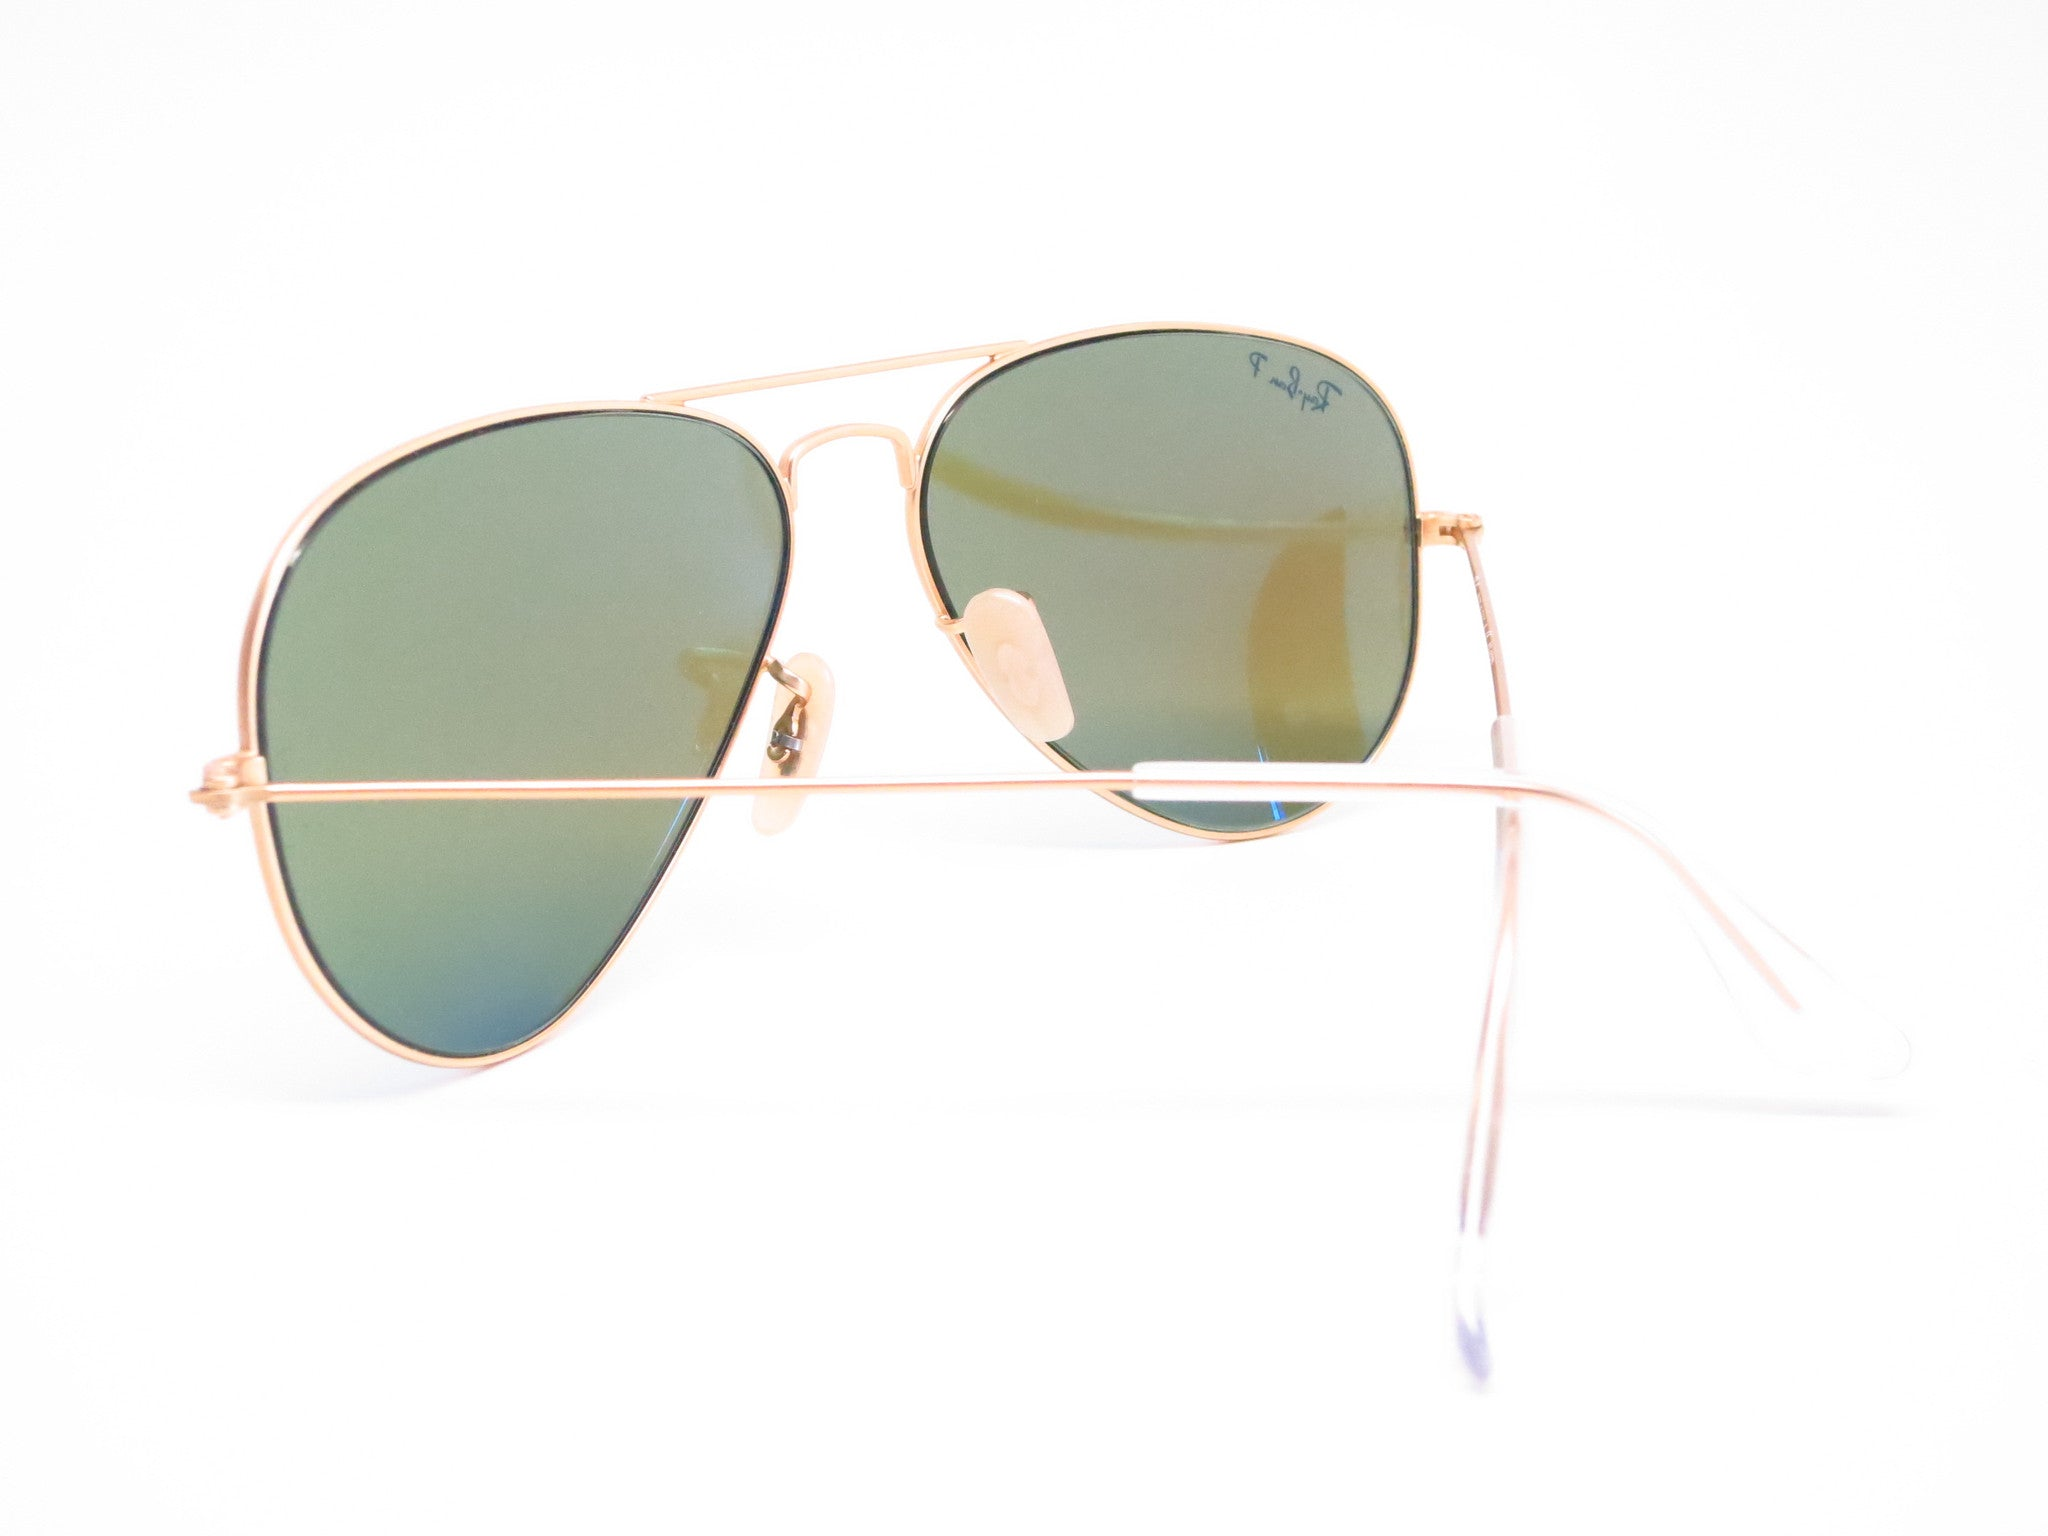 f4dd3d34b3 Ray Ban Rb3025 Aviator Sunglasses Gold Frame Crystal Blue Lens ...